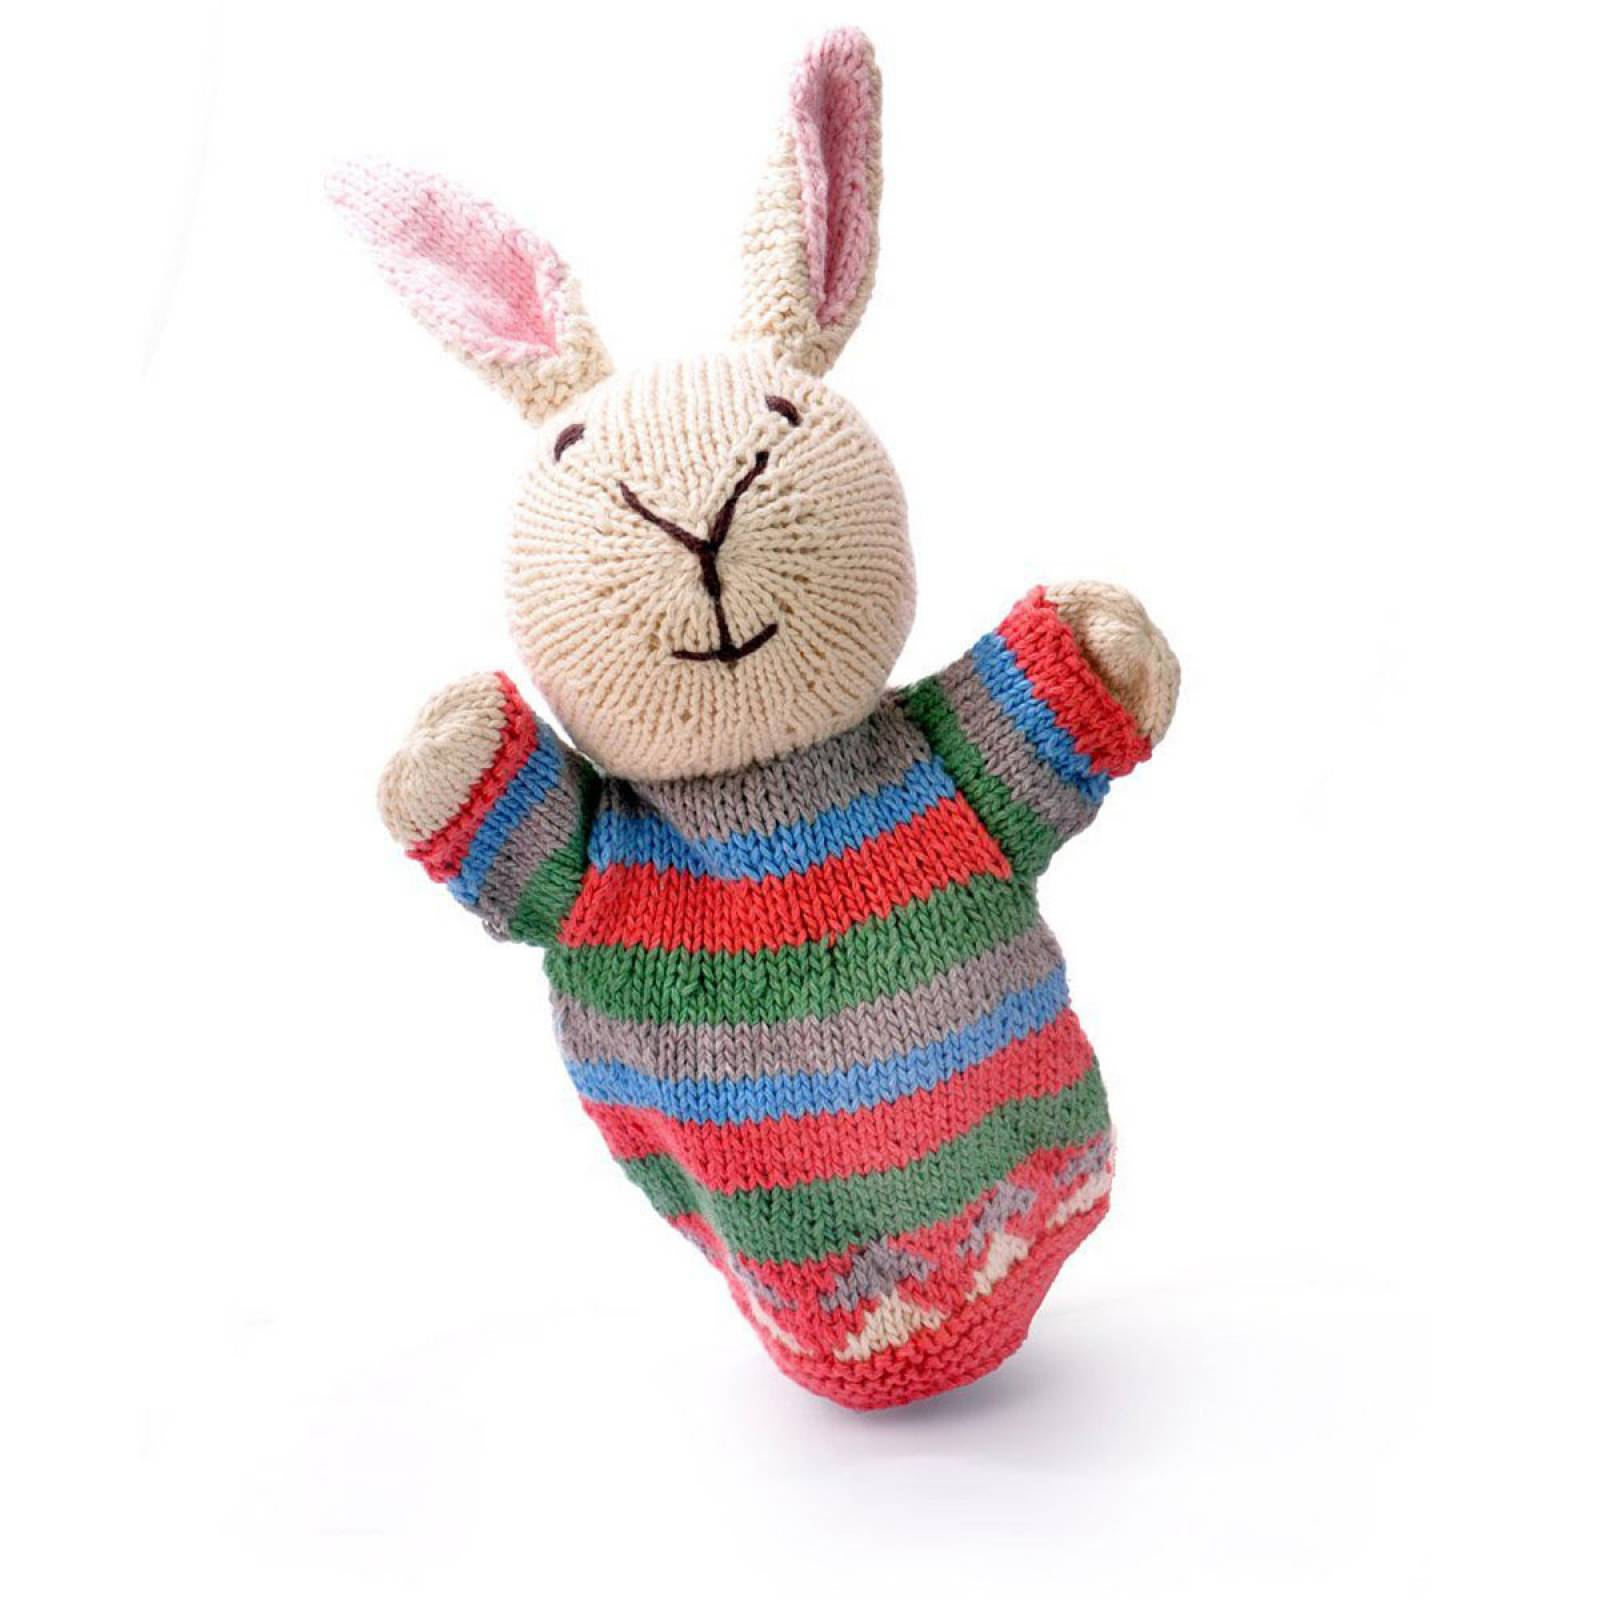 Rabbit - Hand Knitted Glove Puppet Organic Cotton